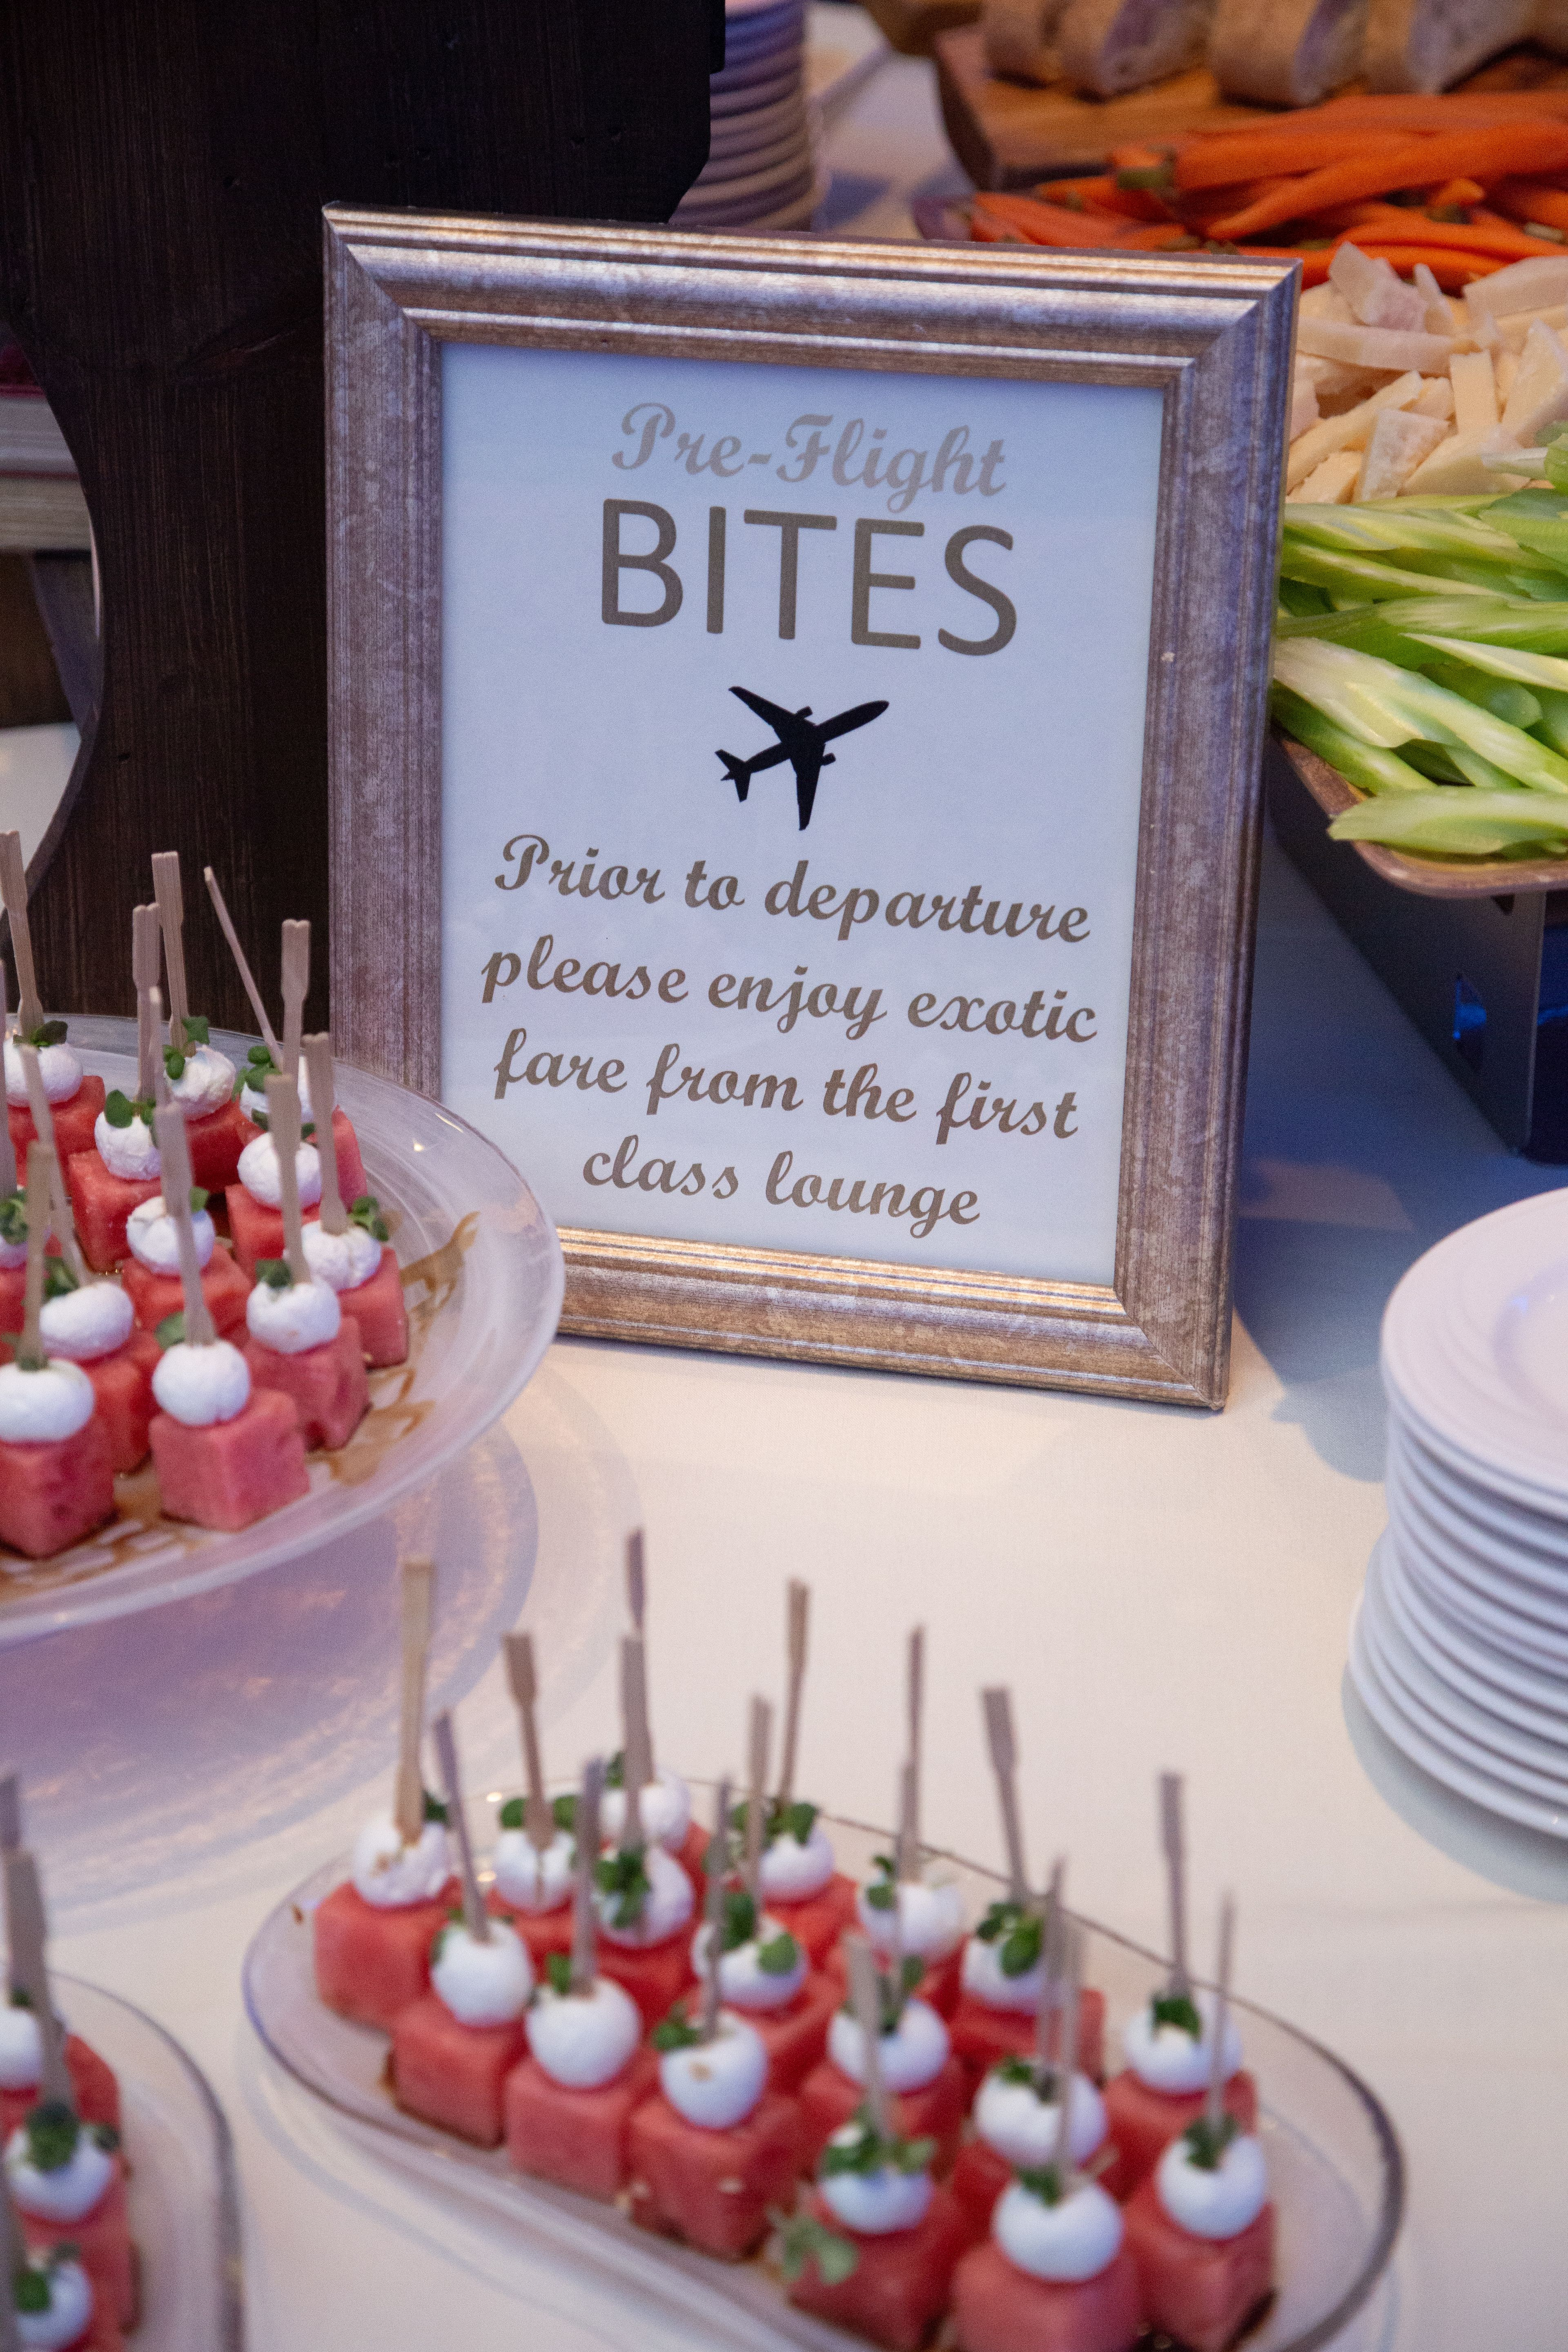 Pin By Leslie W On Special Day In 2020 Travel Party Theme Travel Bridal Showers Party Food Themes